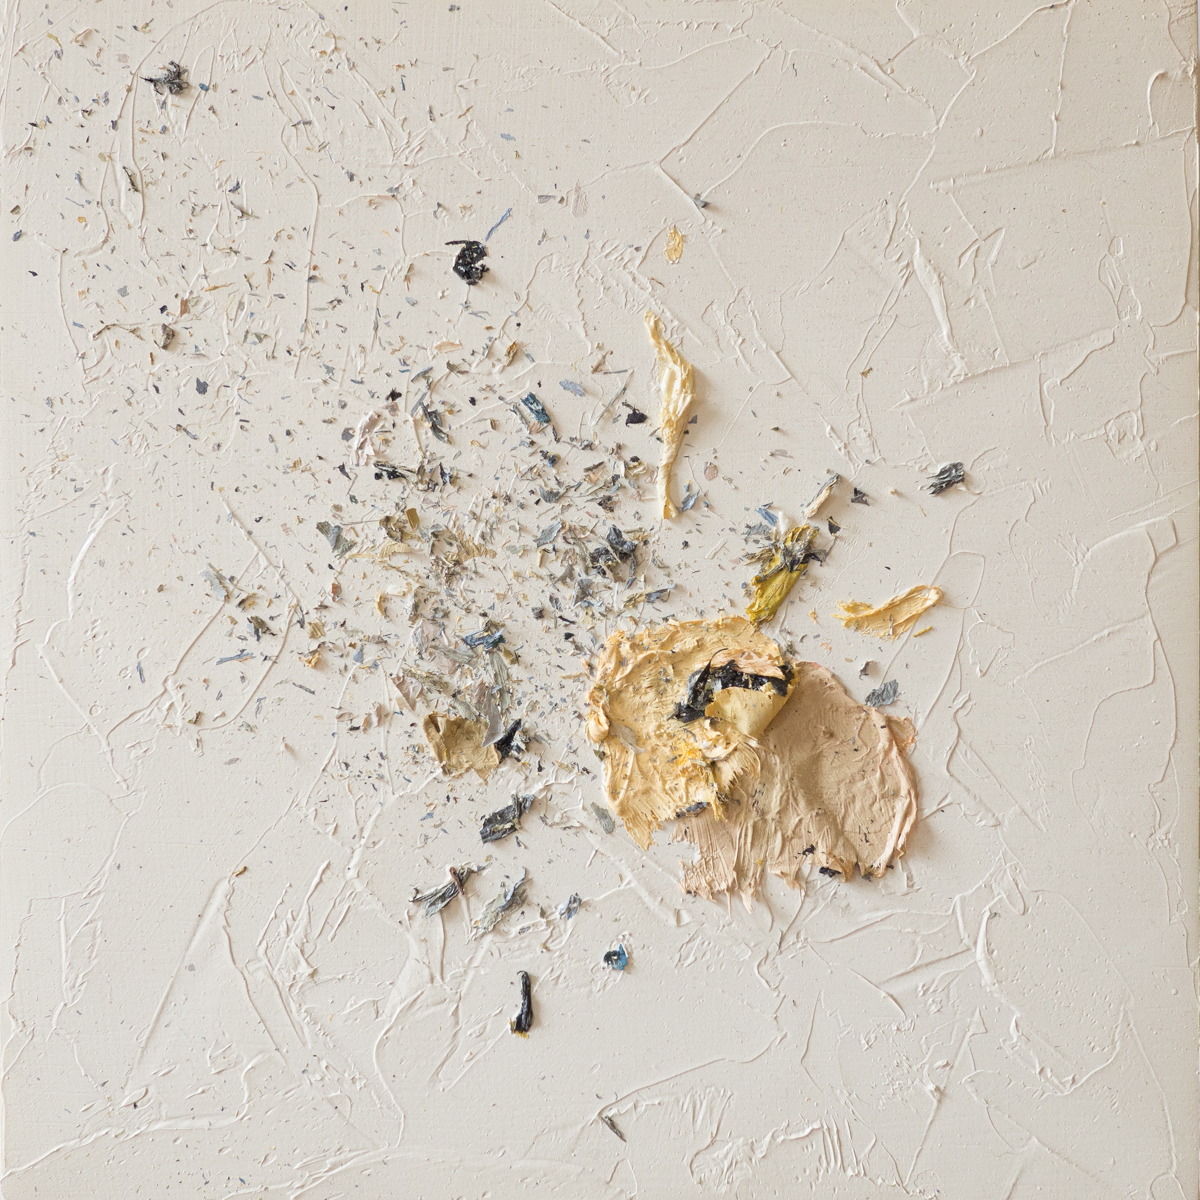 The Complexities of Emotions No.6   oils & oil paint scrapings on wood panel, 6 x 6